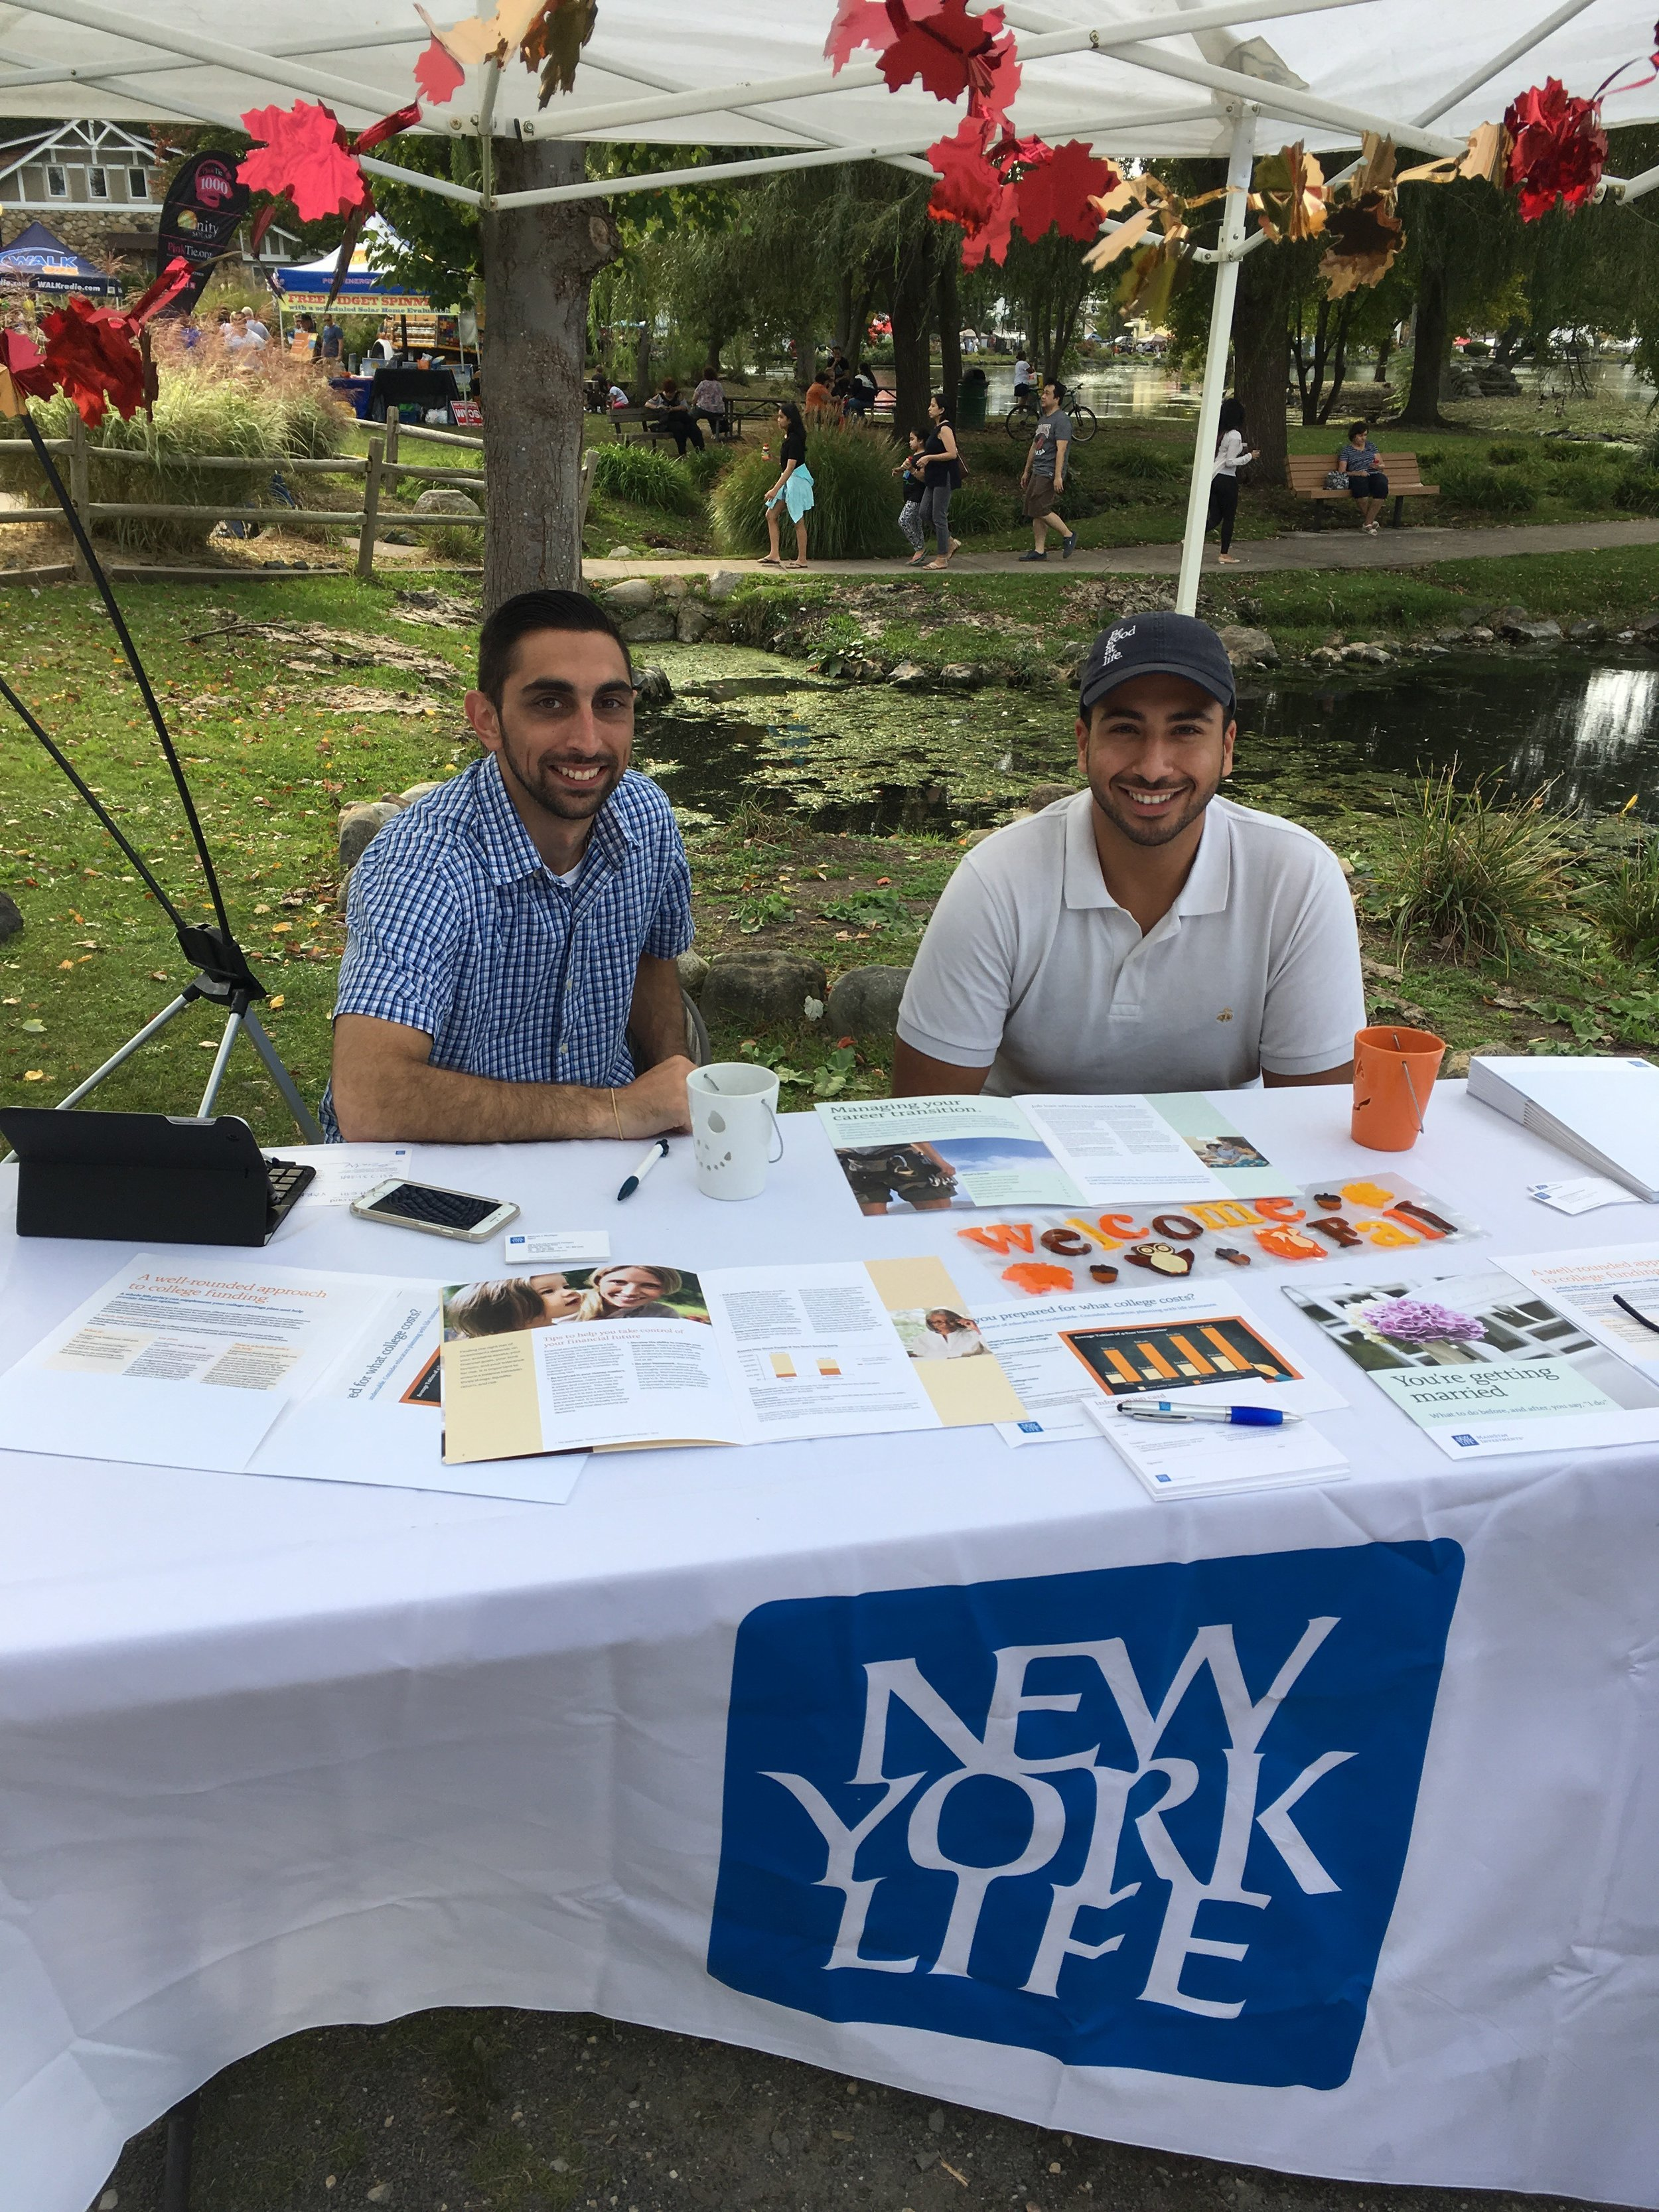 Michael J. Rhatigan and Kareem Abdelmagid, of New York Life Insurance Company in Melville, at their booth during the Long Island Fall Festival.   Long Islander News Photo/Paul Shapiro